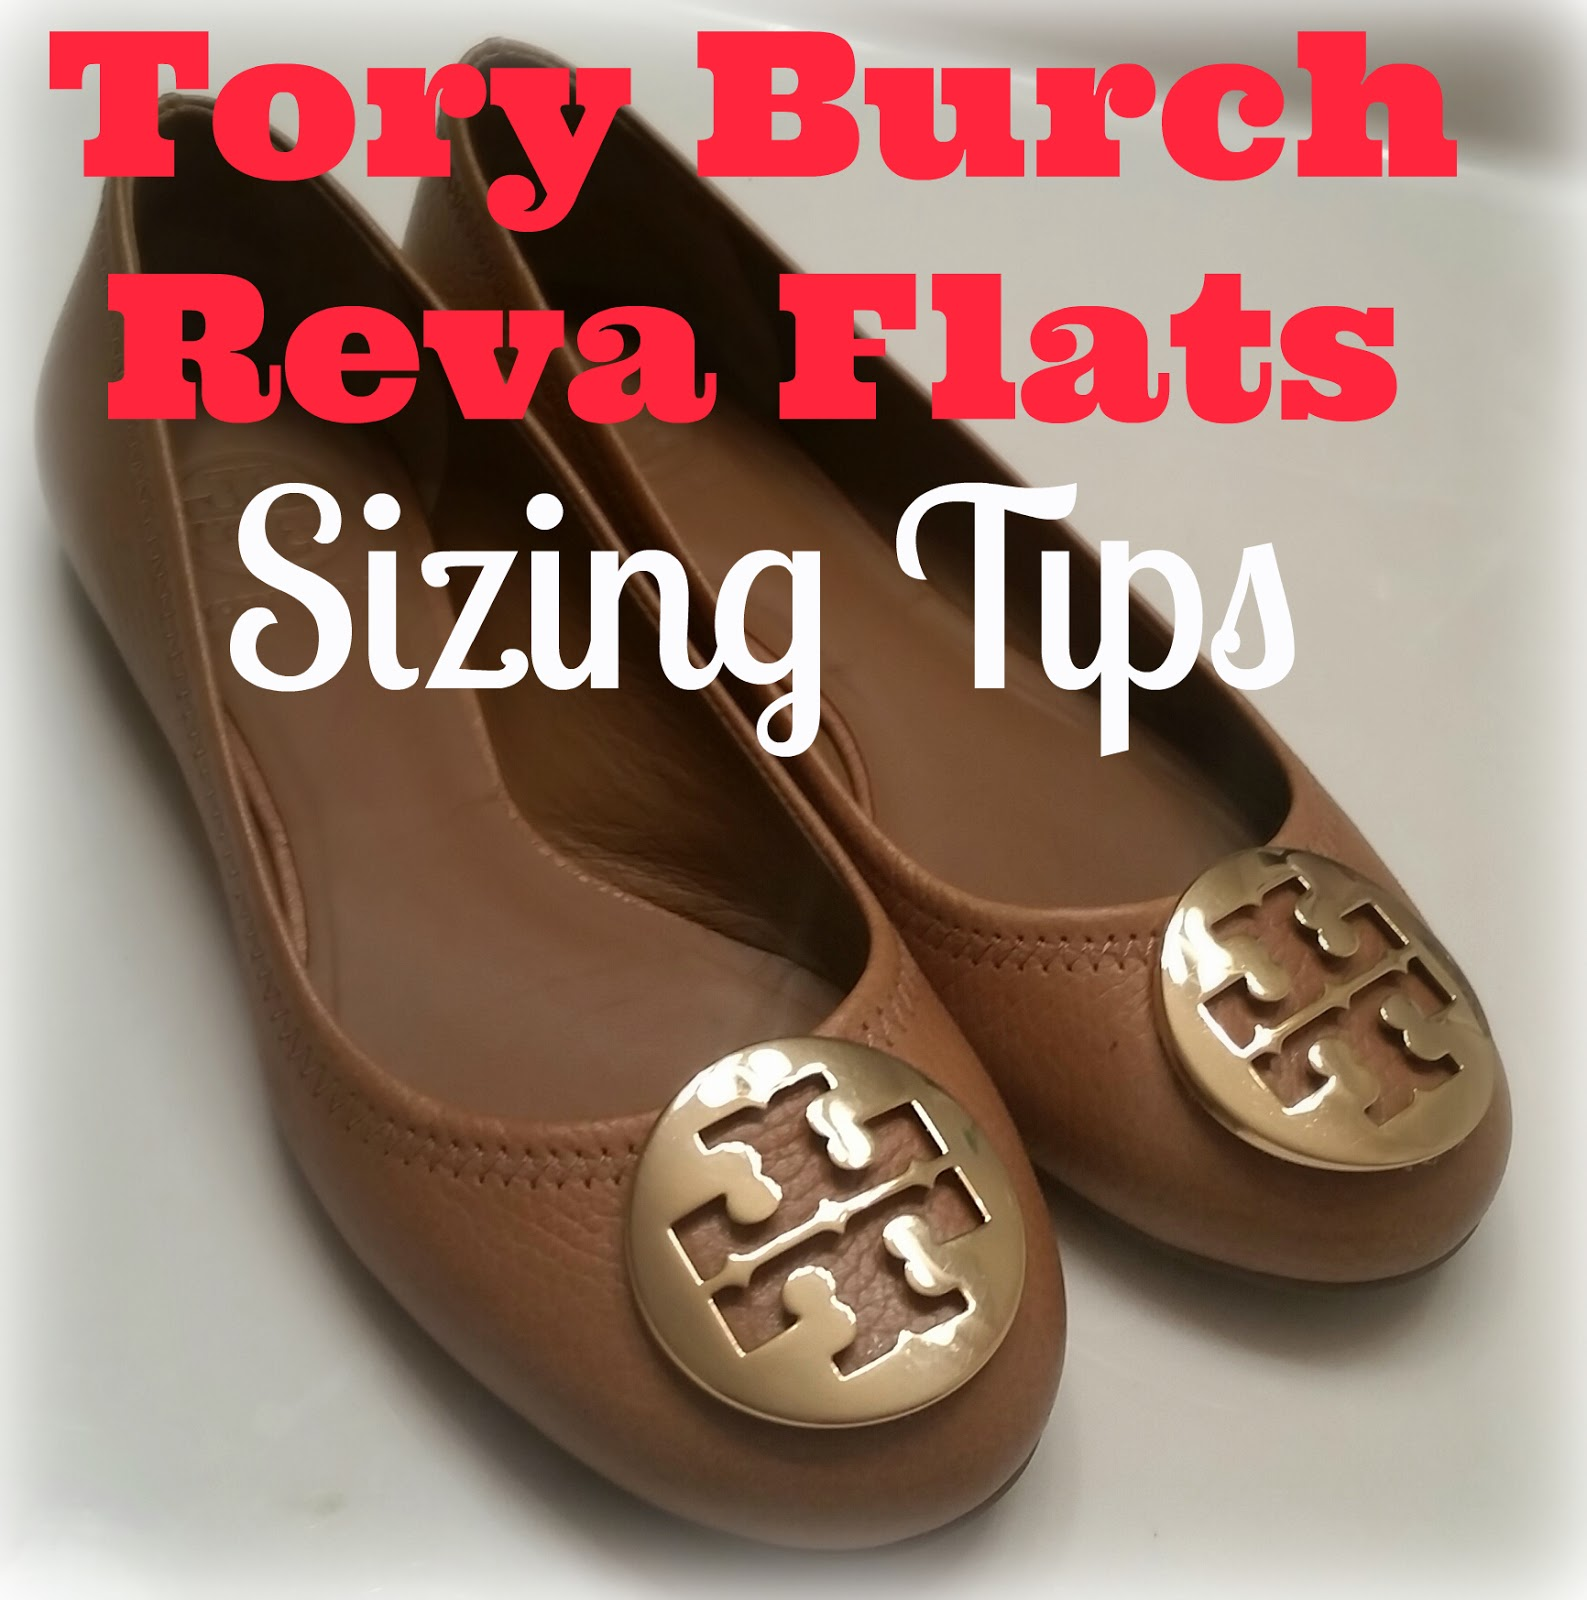 Tory Burch Reva Flats Sizing Tips. I've been meaning to do this post for  quite a while. So for a little break from all the moving talk, why not at  nearly 3 ...